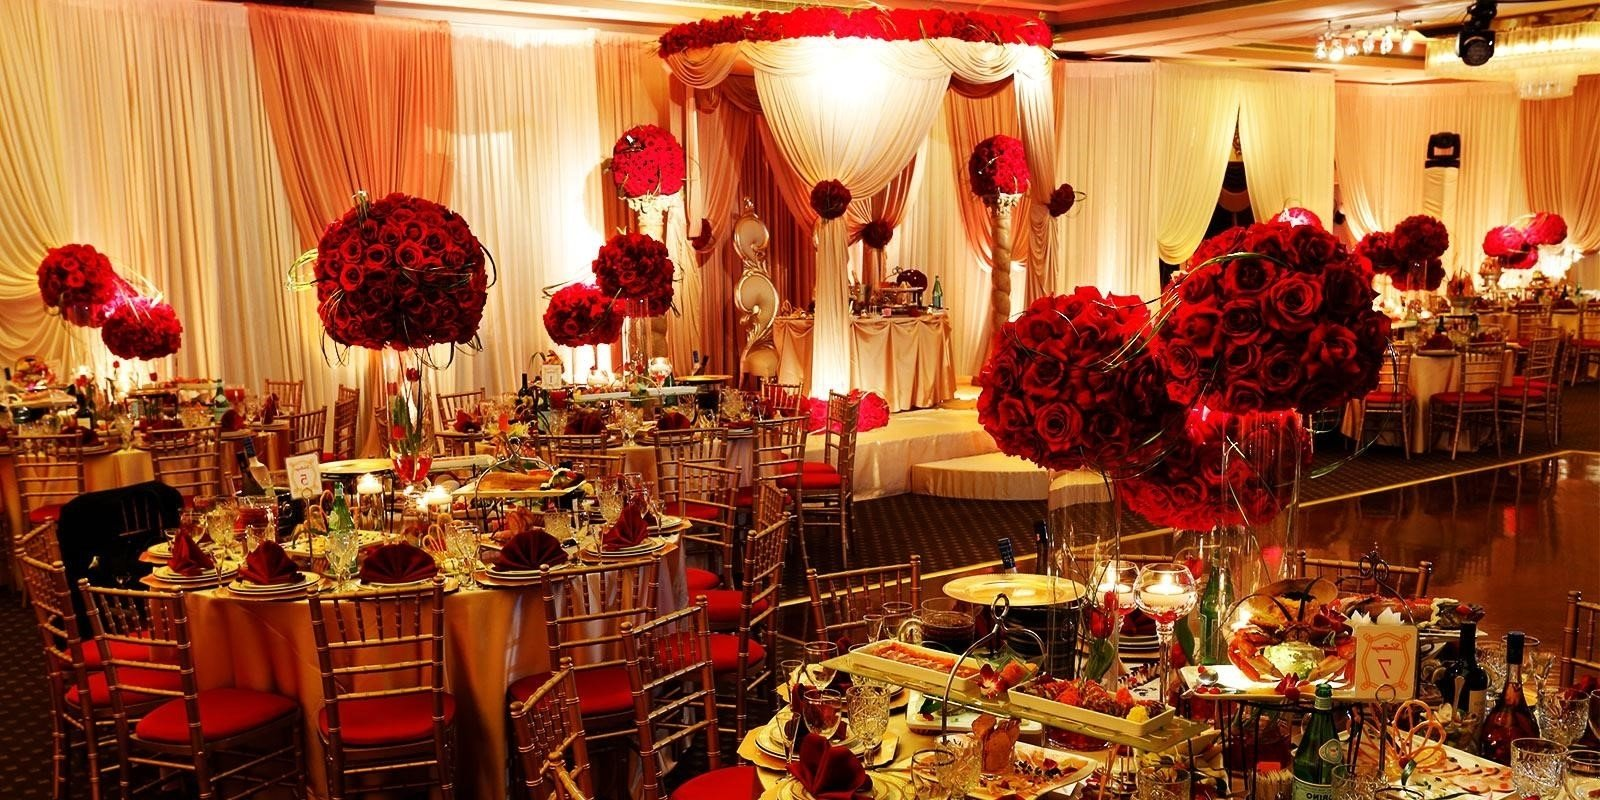 10 fantastic red and gold wedding ideas 10 fantastic red and gold wedding ideas gold wedding theme reception gallery wedding decoration ideas junglespirit Image collections